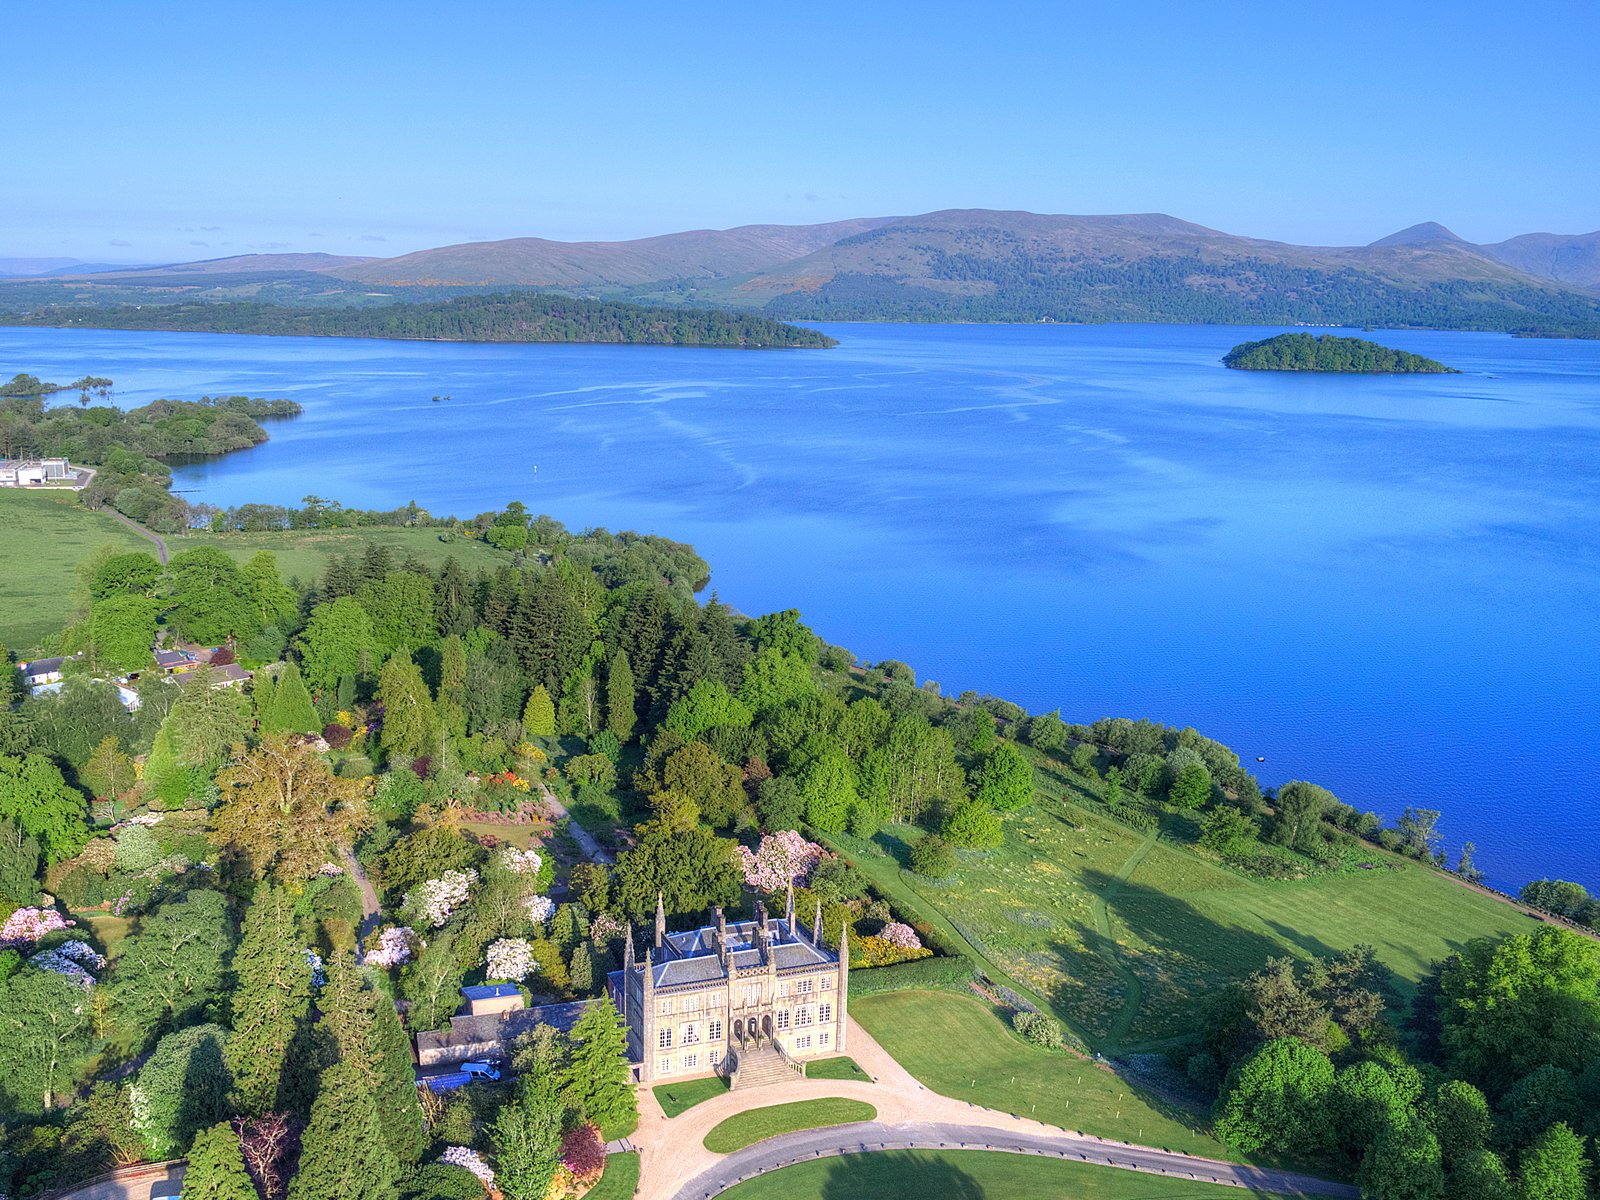 Aerial shot of Ross Priory and estate, with views over Loch Lomond. Image courtesy of Aye in the Sky.